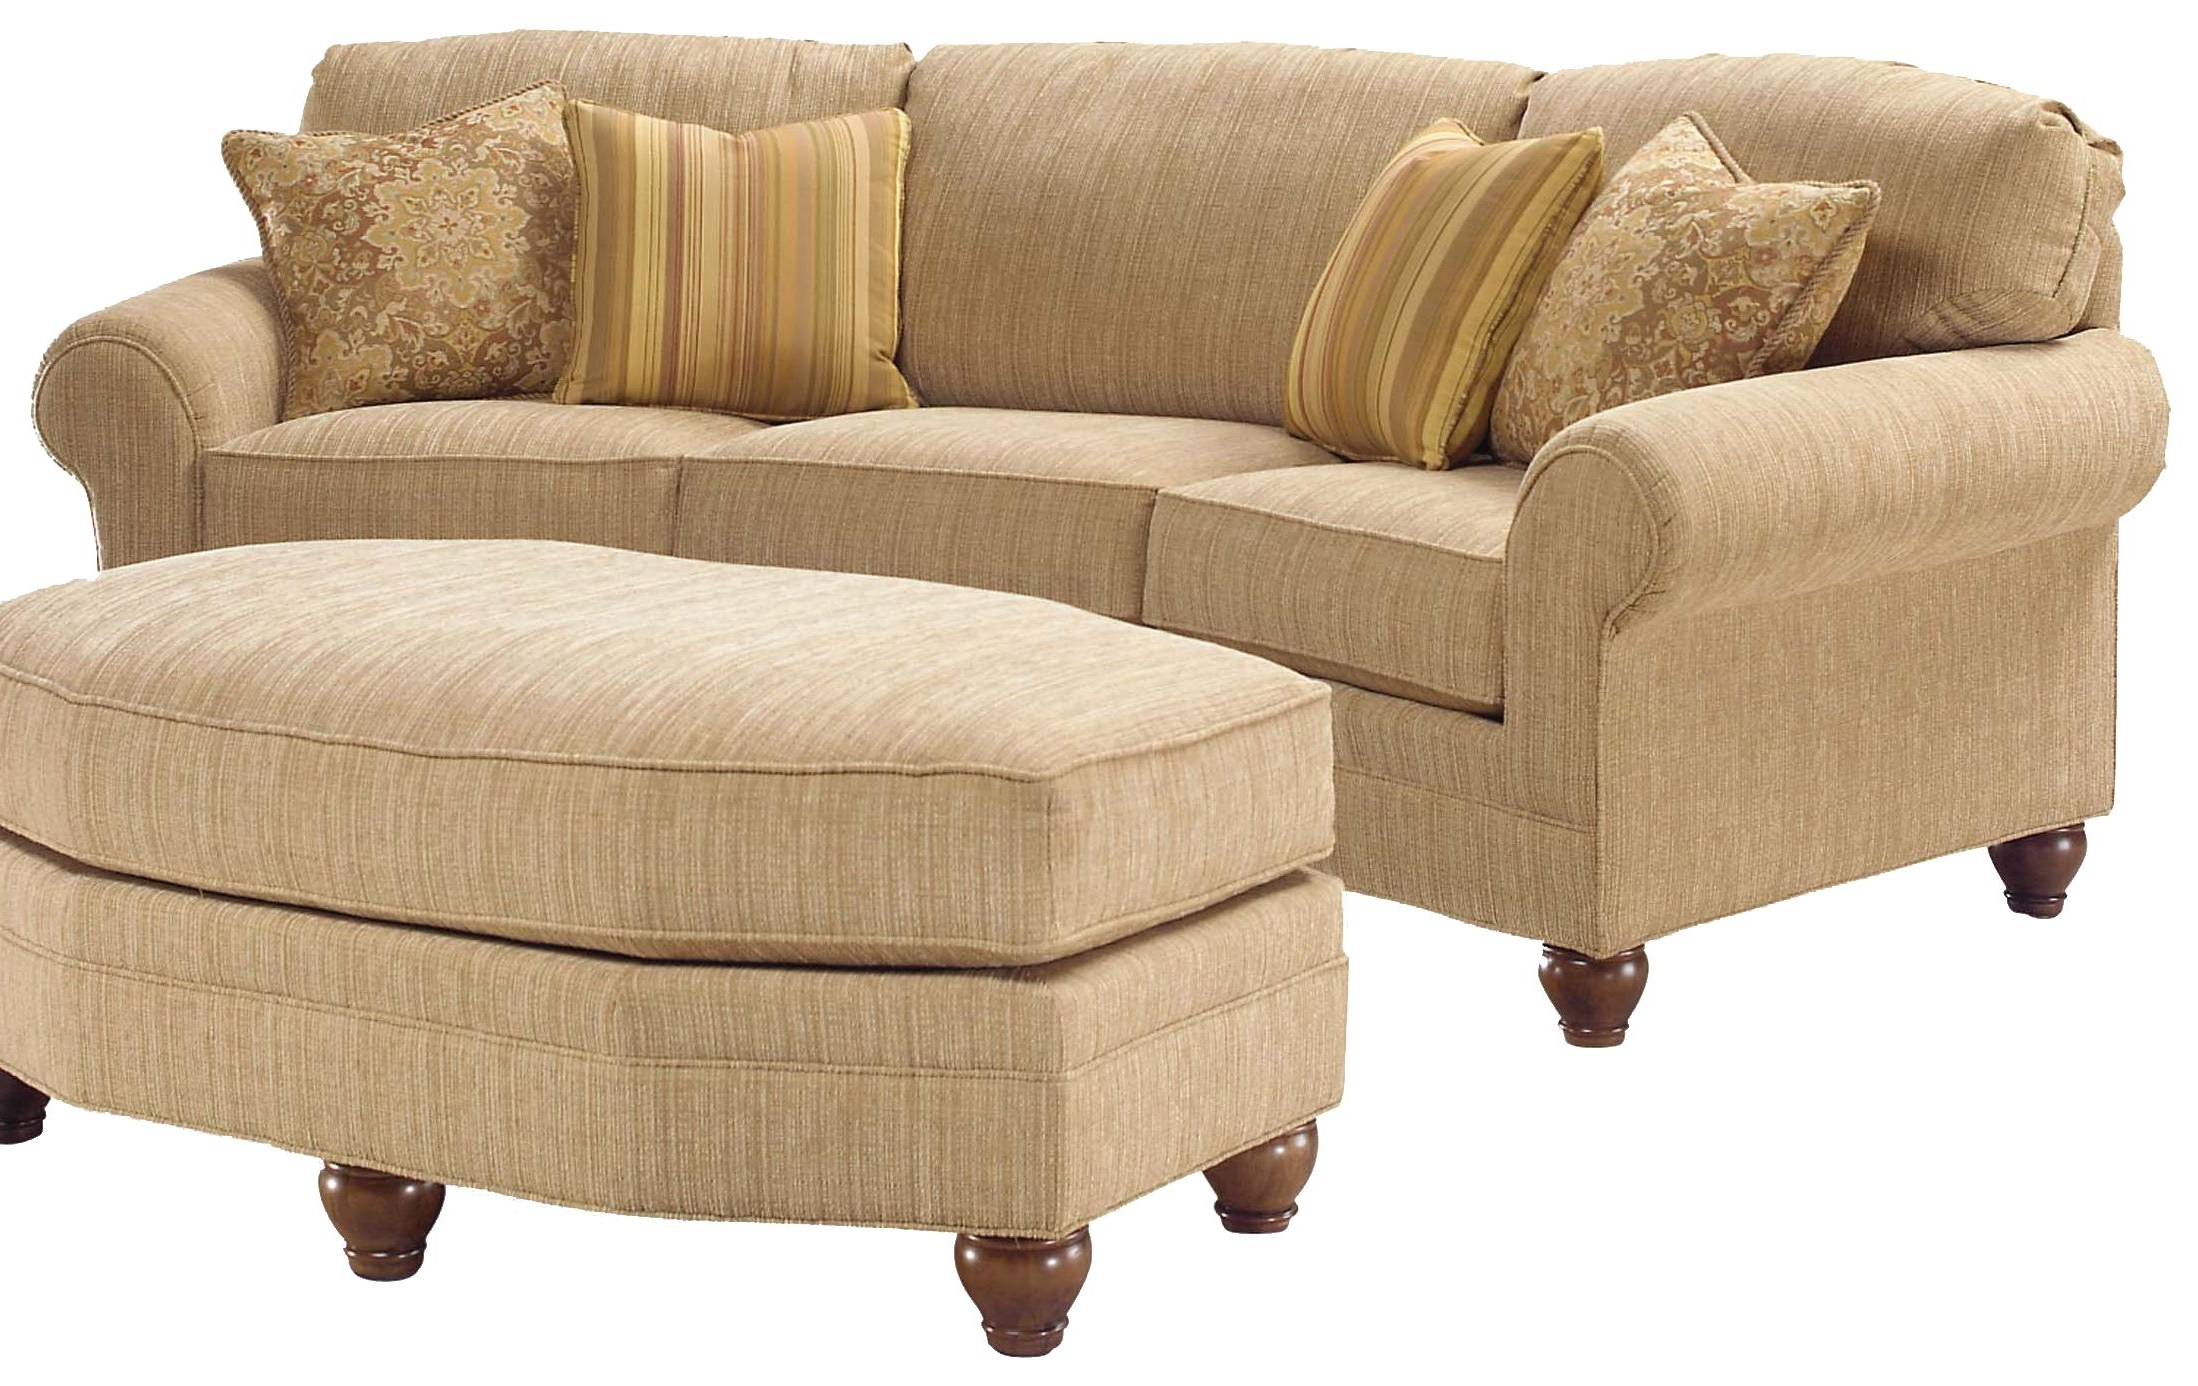 Olinde's Furniture Regarding Best And Newest Curved Recliner Sofas (View 18 of 20)